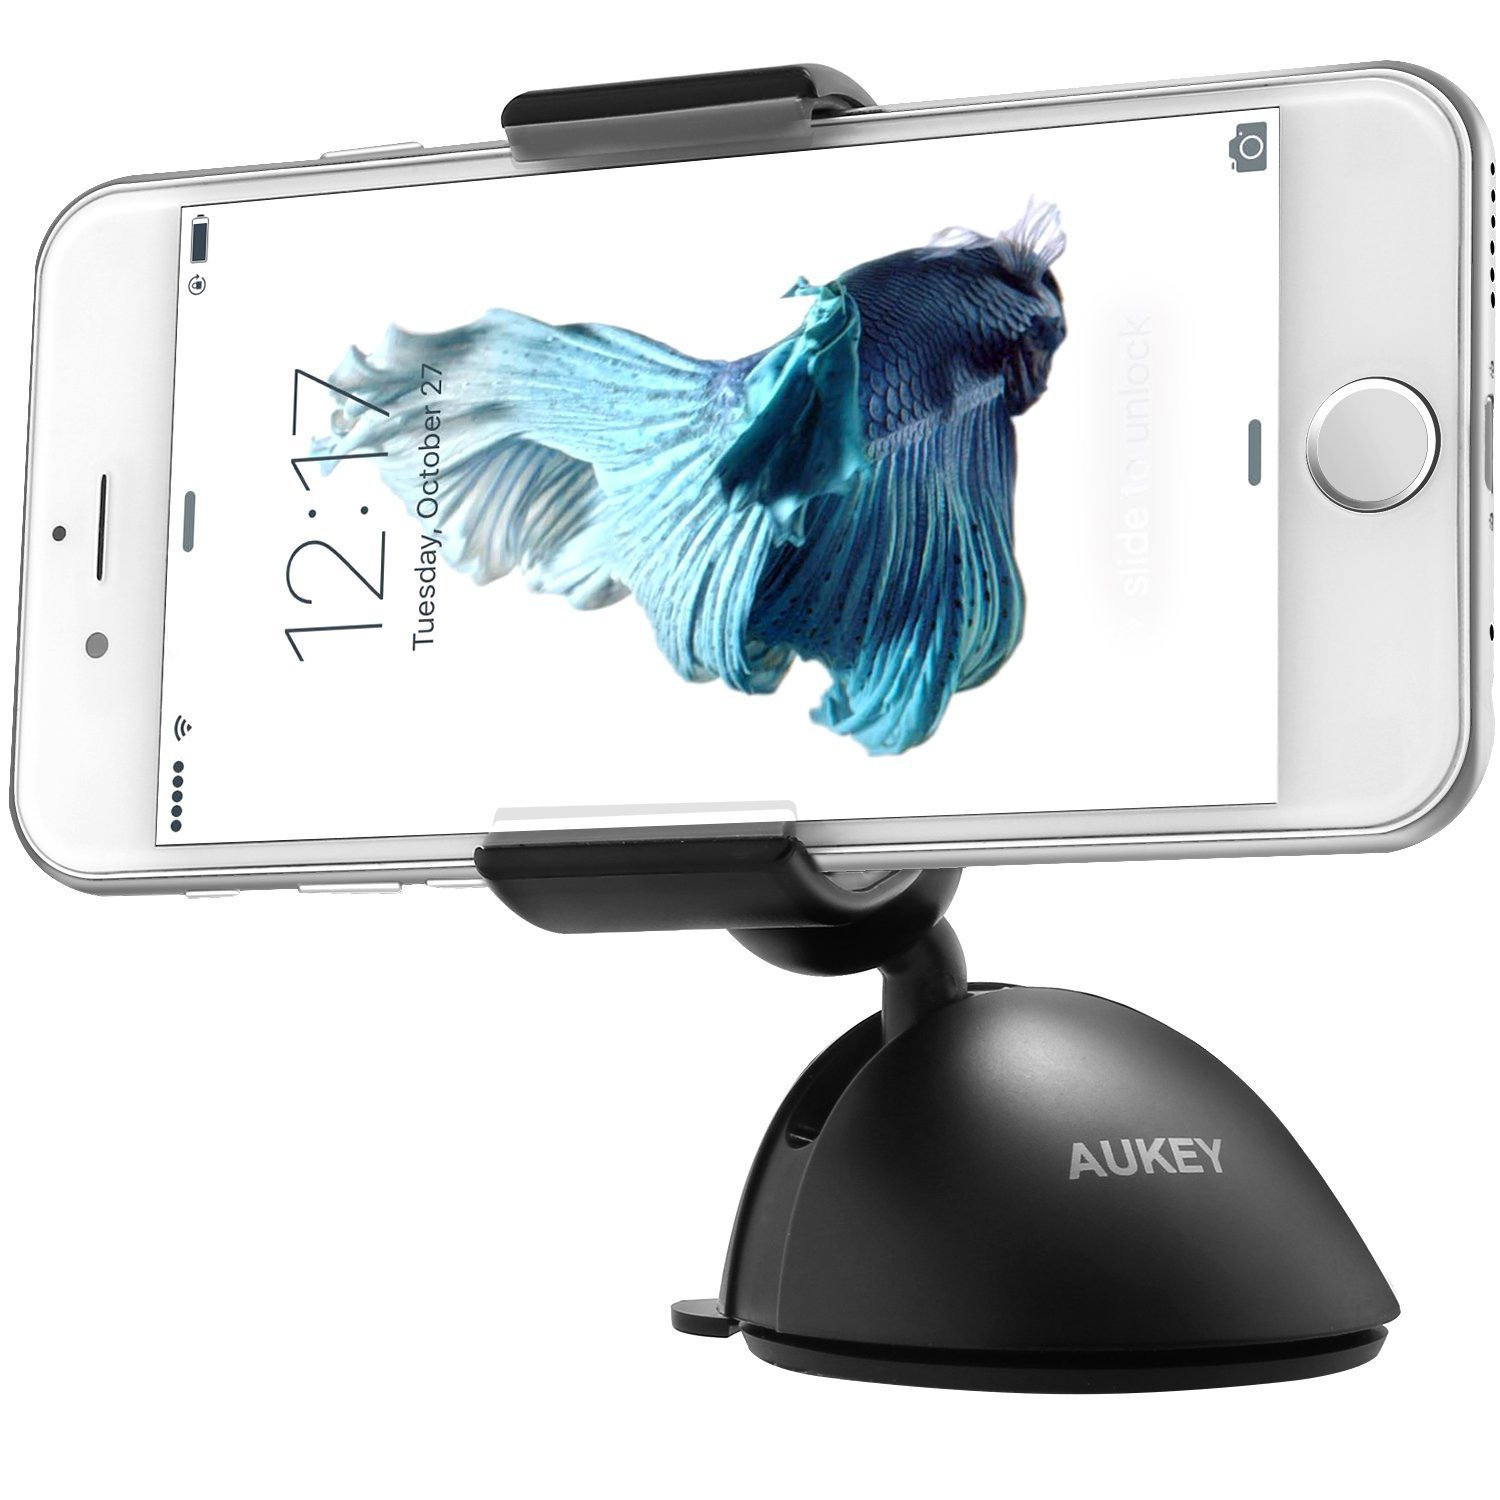 aukey-windshield-dashboard-car-mount-holder-cradle-for-iphone-6s-plus-6s-samsung-galaxy-6s-and-more-other-phone-single-hand-operation